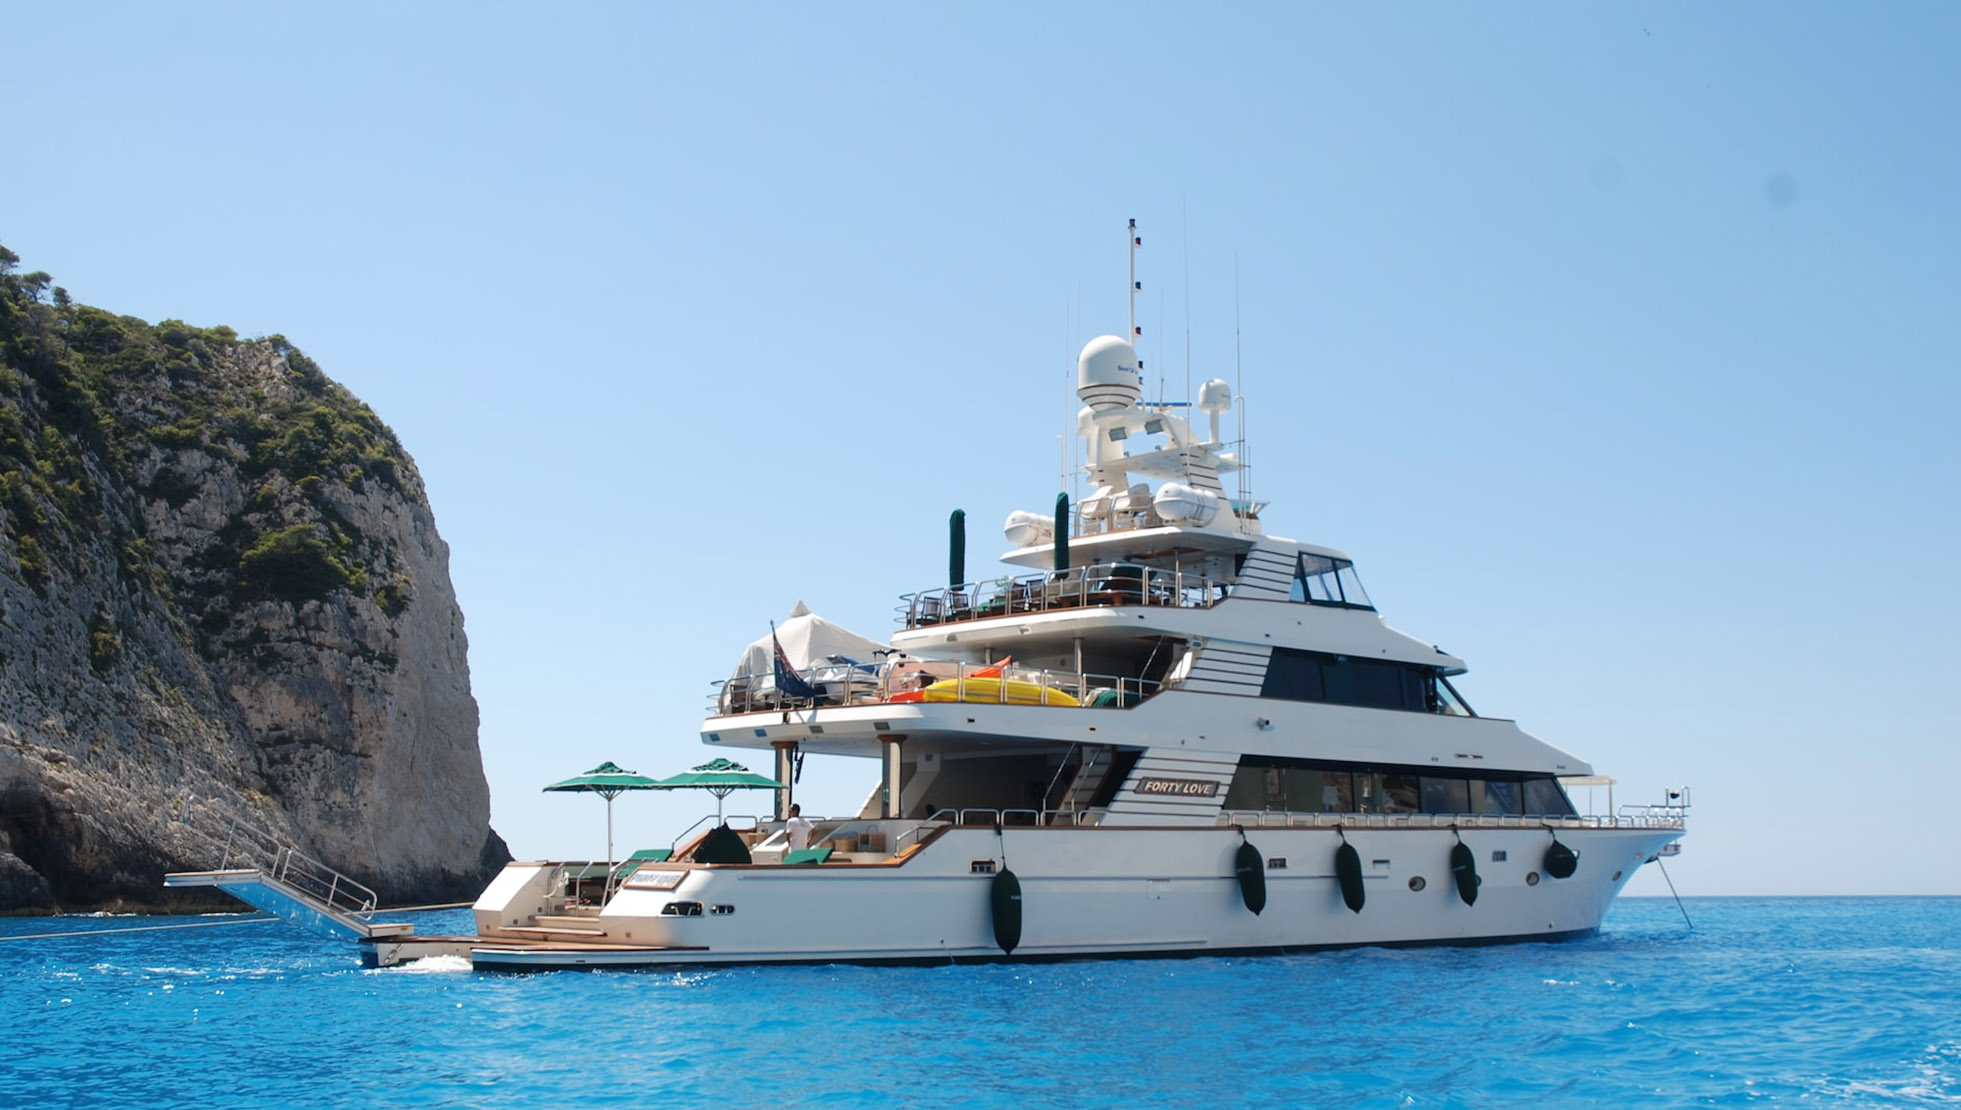 About Neo Yachting